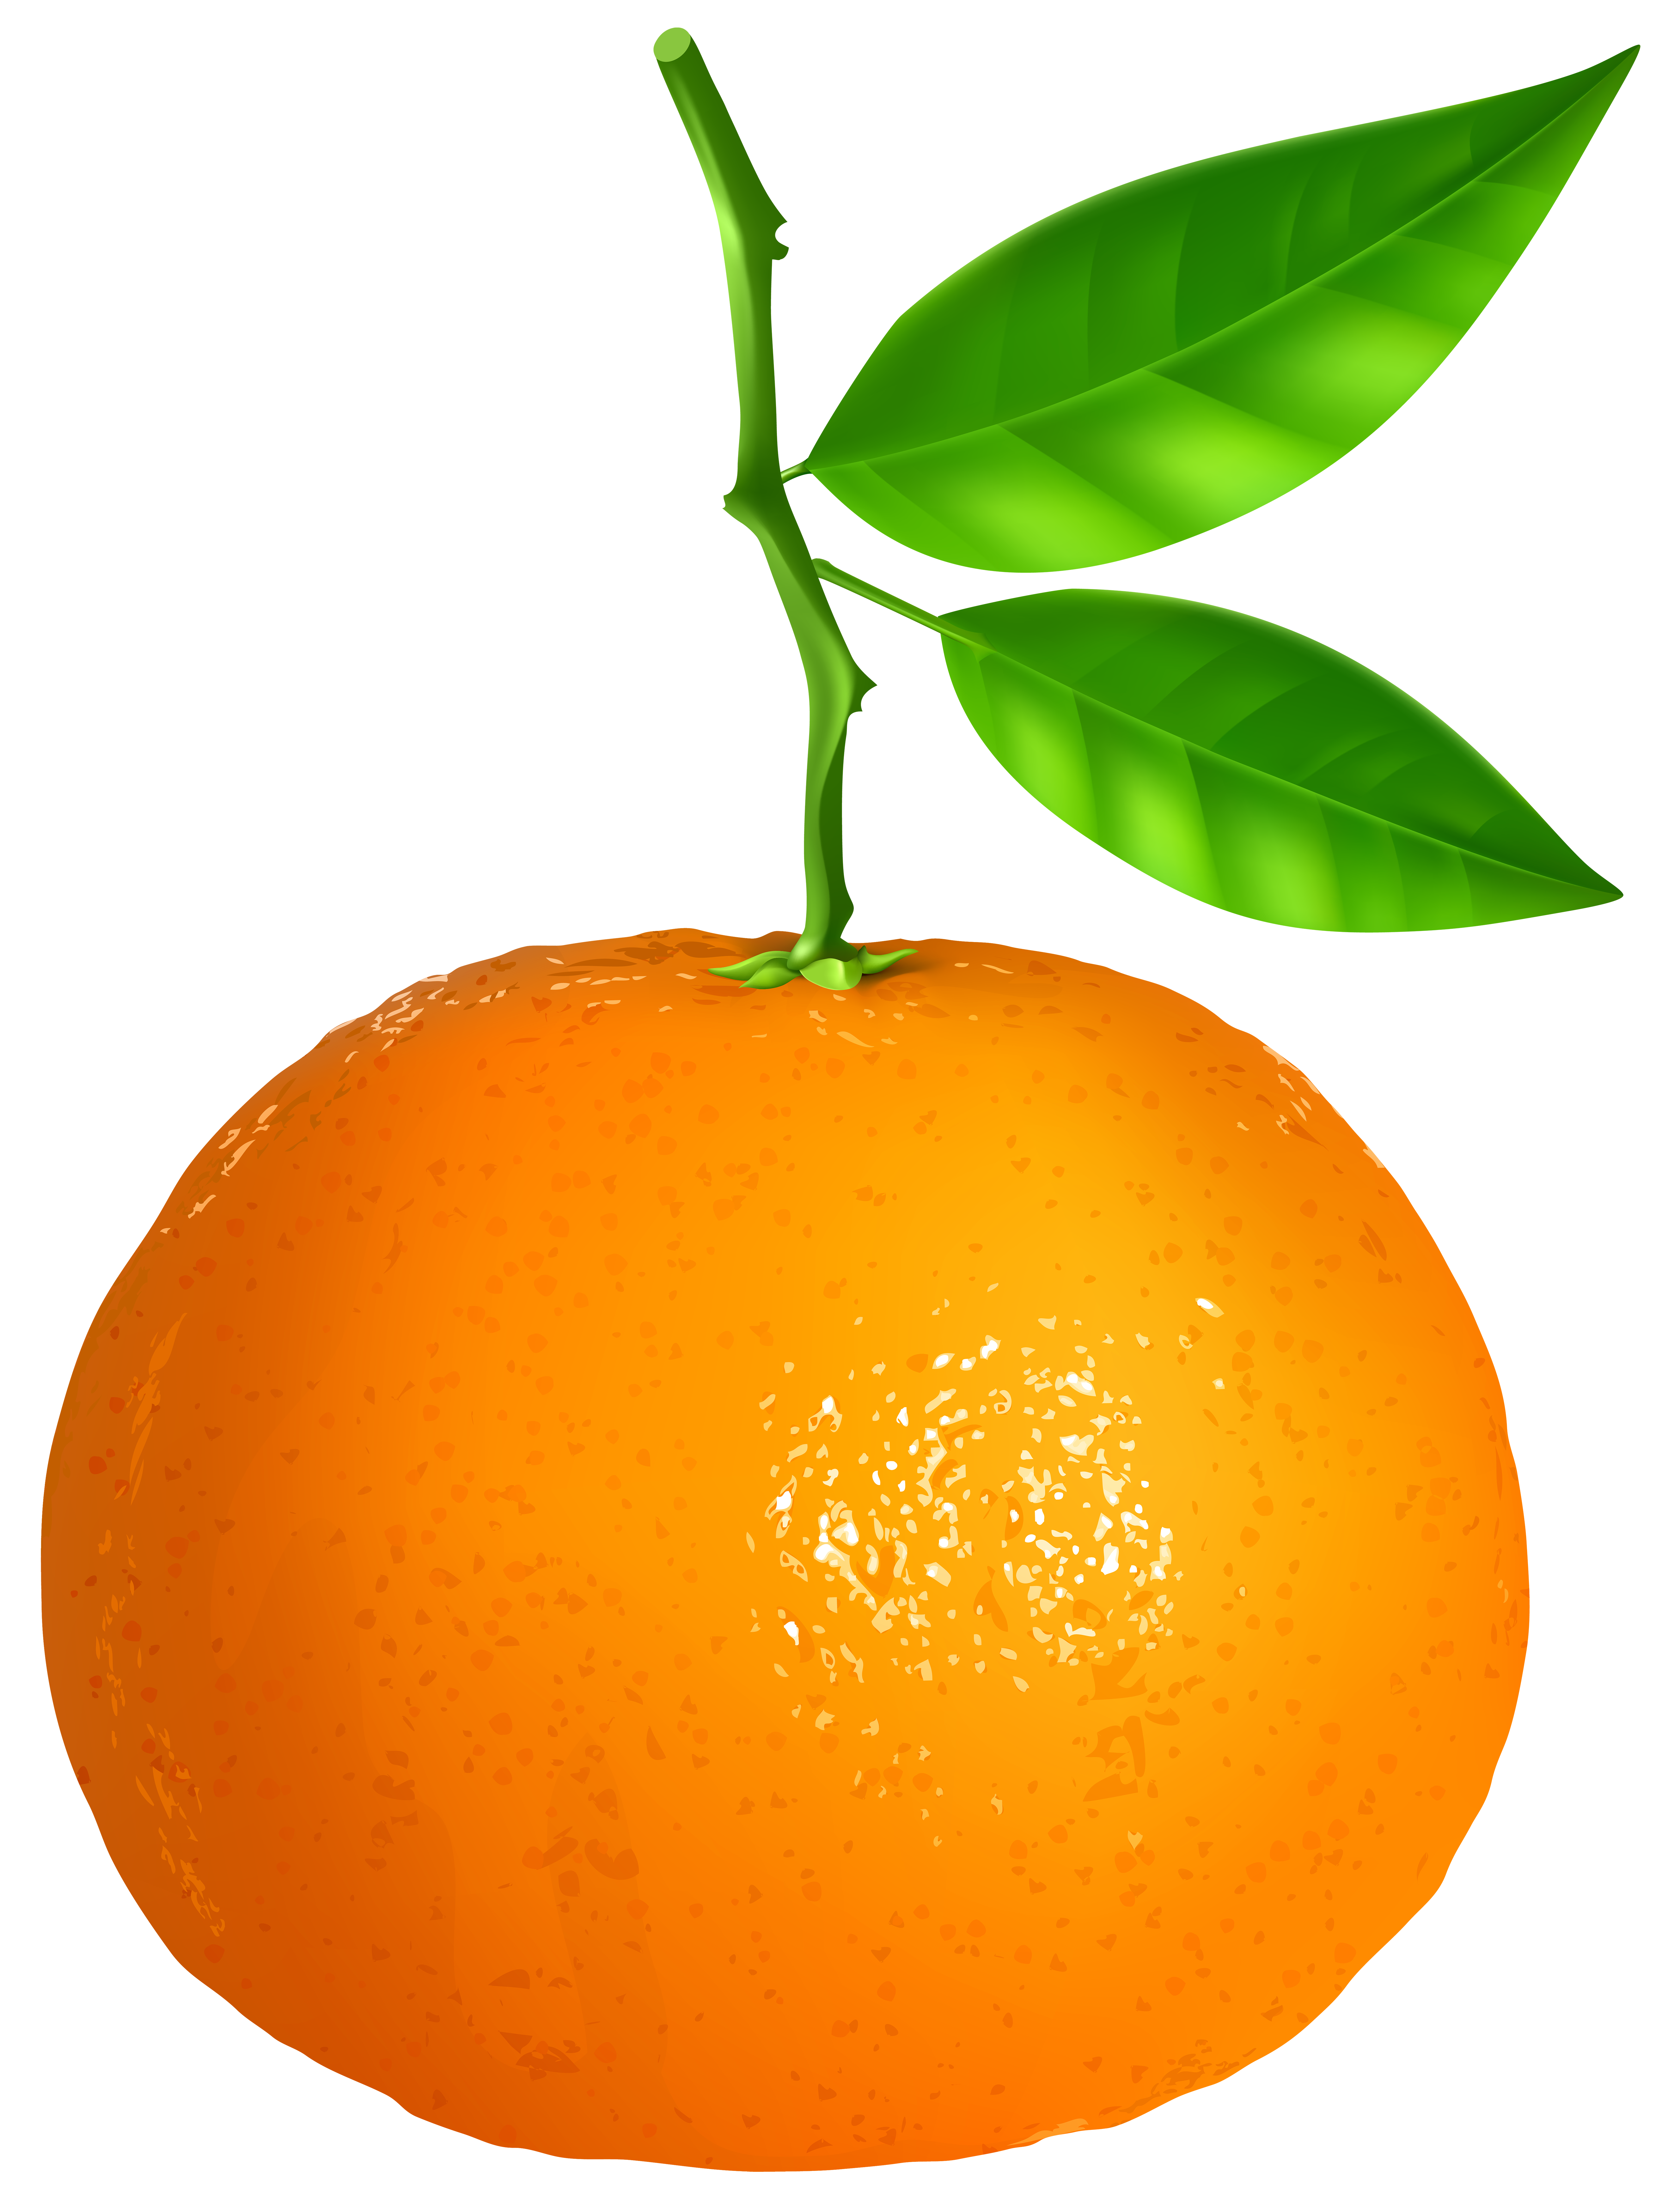 Tangine clipart clipart freeuse download Tangerine Transparent PNG Clip Art Image | Gallery ... clipart freeuse download